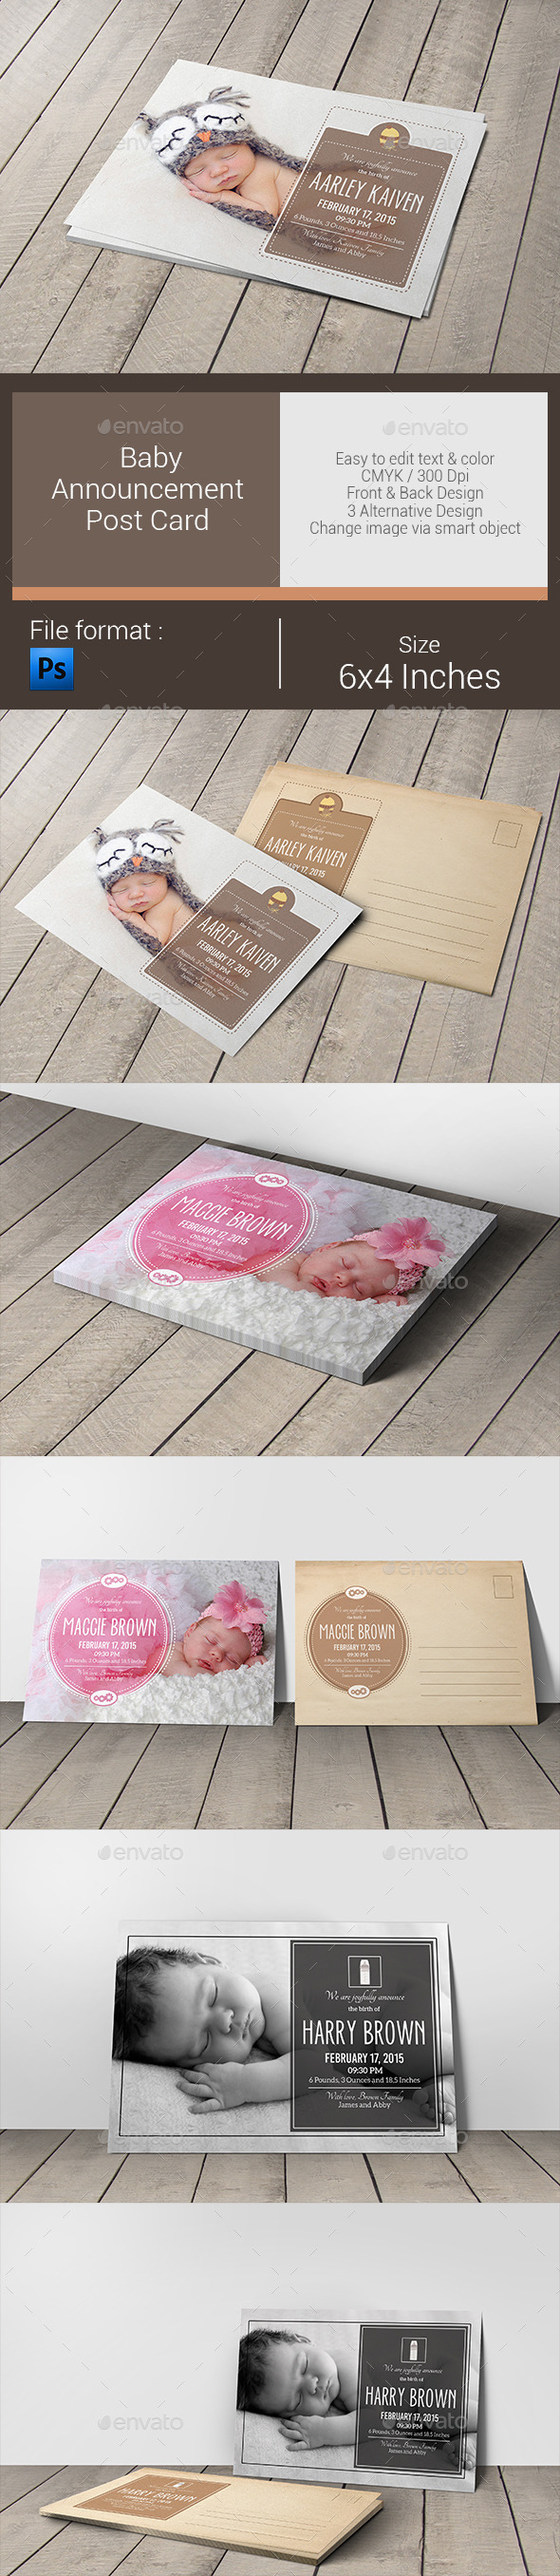 GraphicRiver Baby Announcement Post Card 10509109